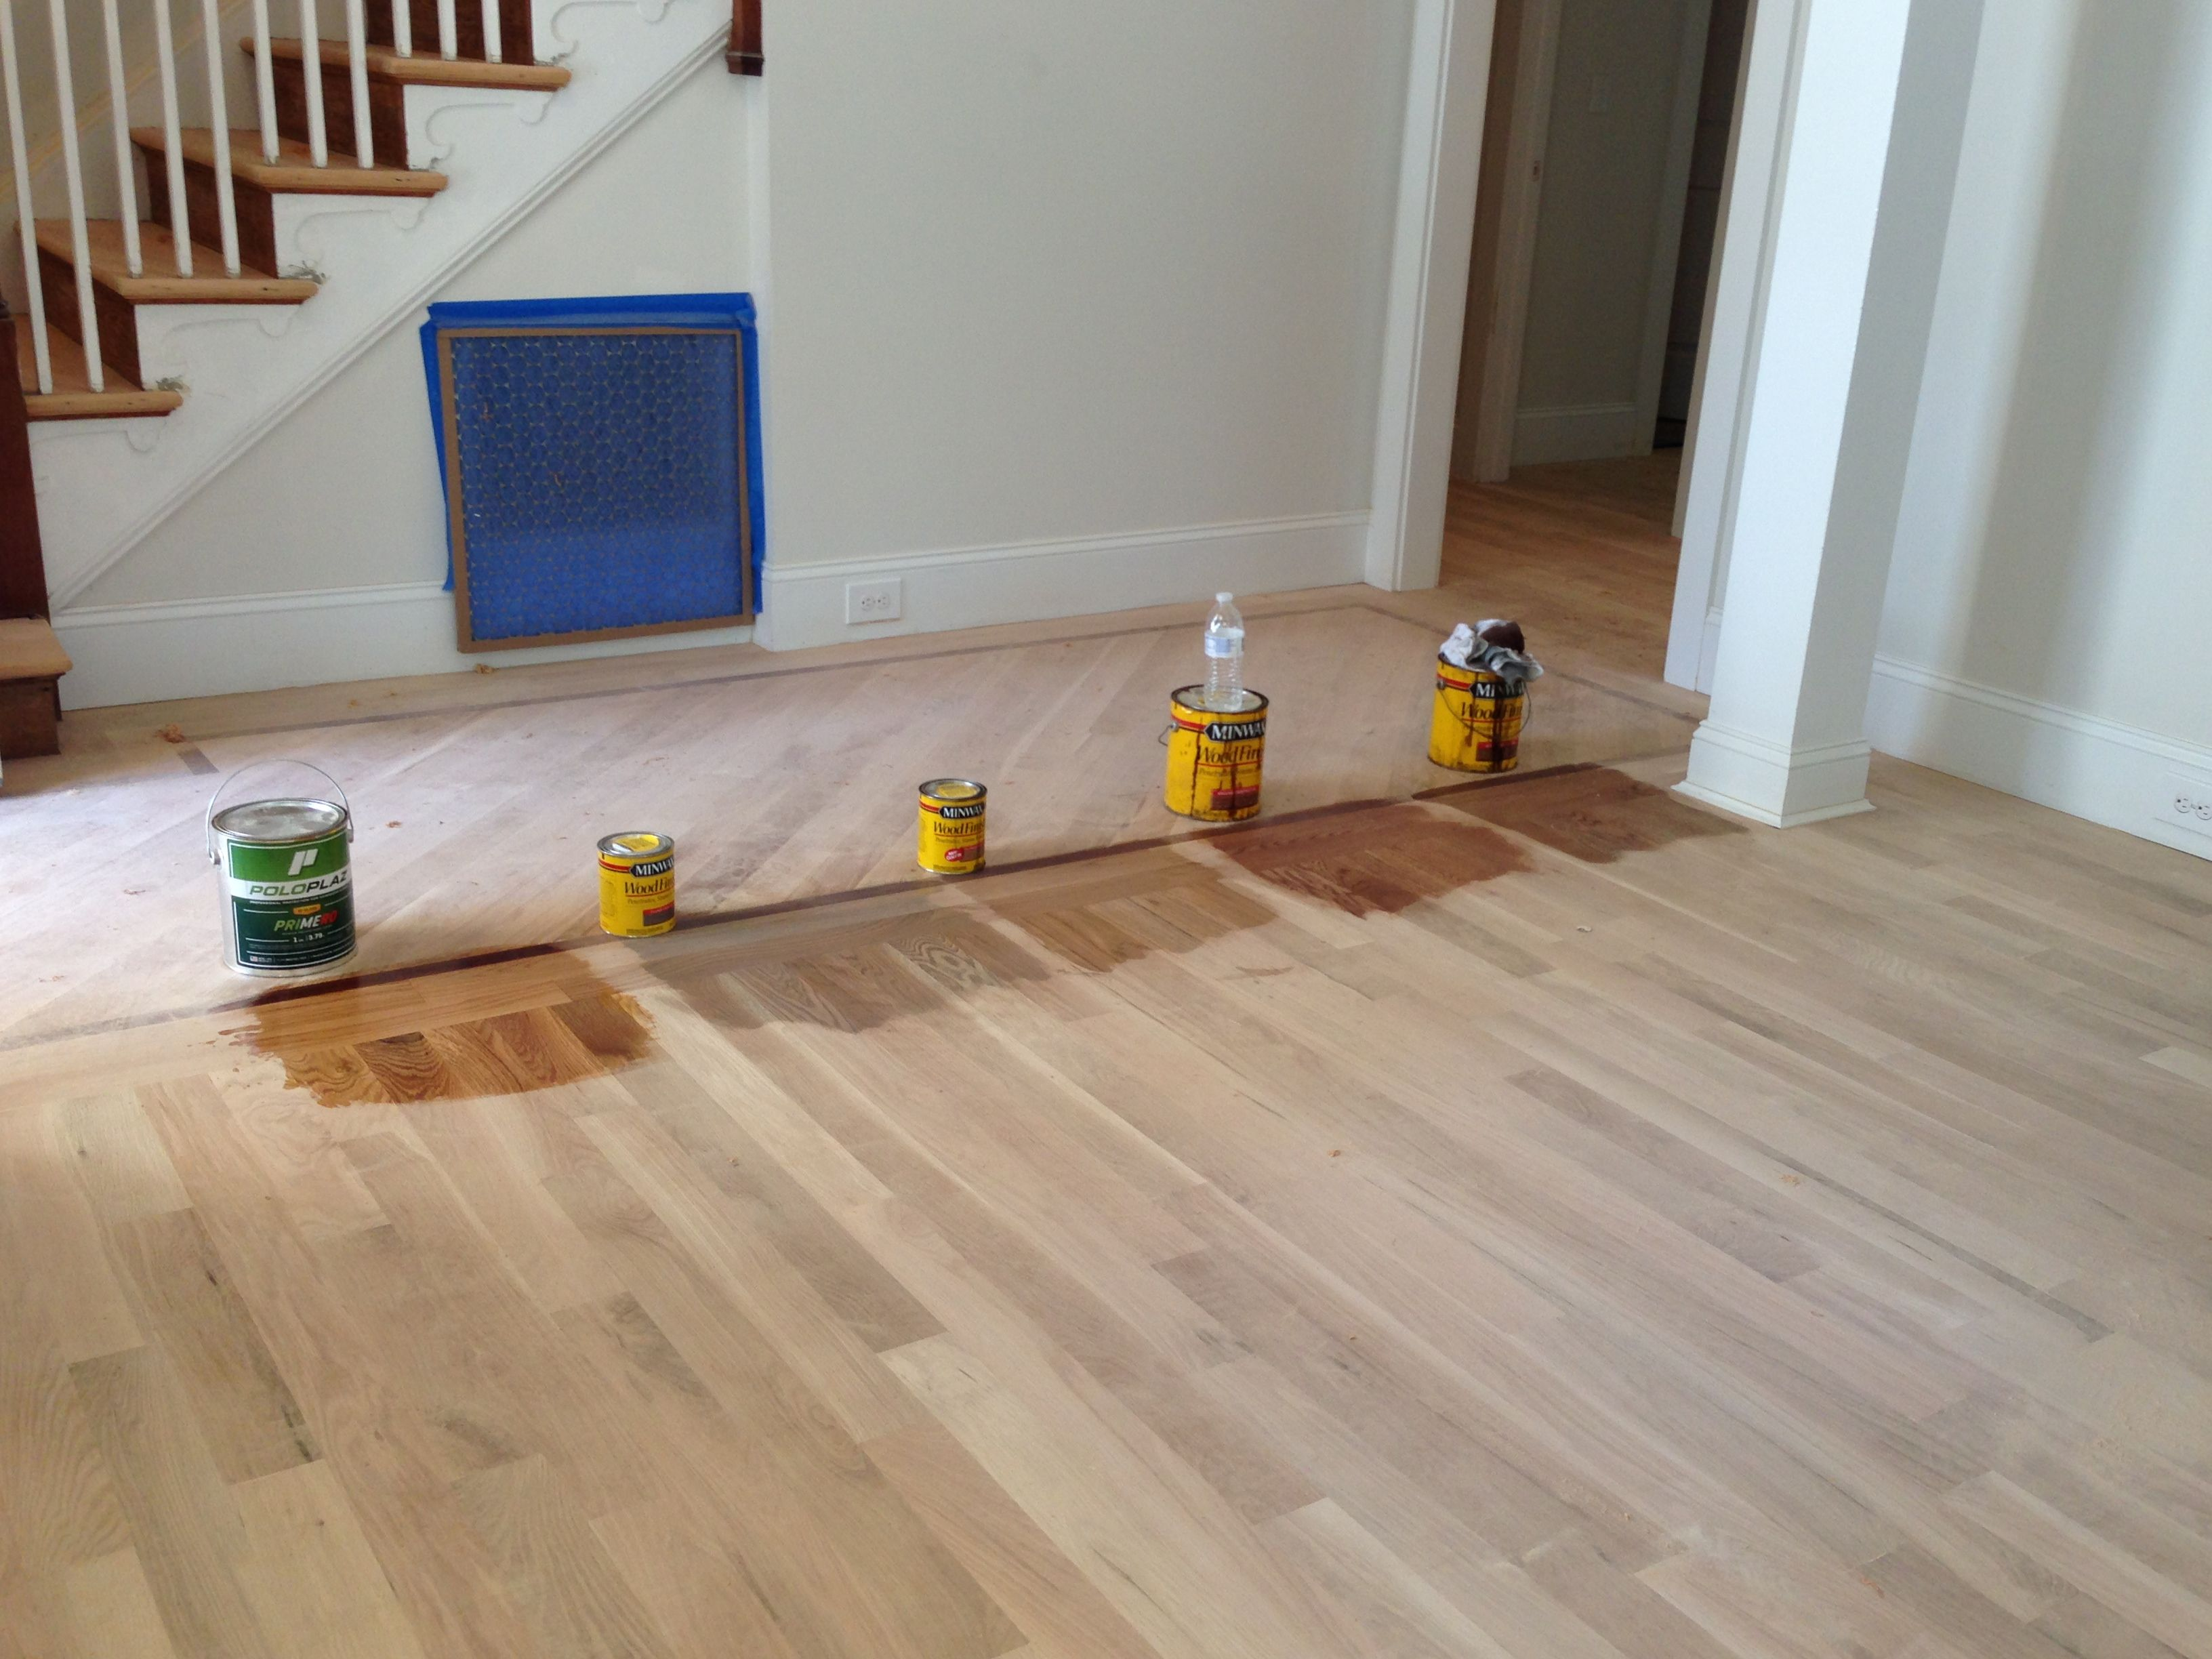 Minwax Floor Stains For White Oak Flooring Far Left Just Polyurethane Second From Left Gray Mi Oak Floor Stains White Oak Hardwood Floors White Oak Floors